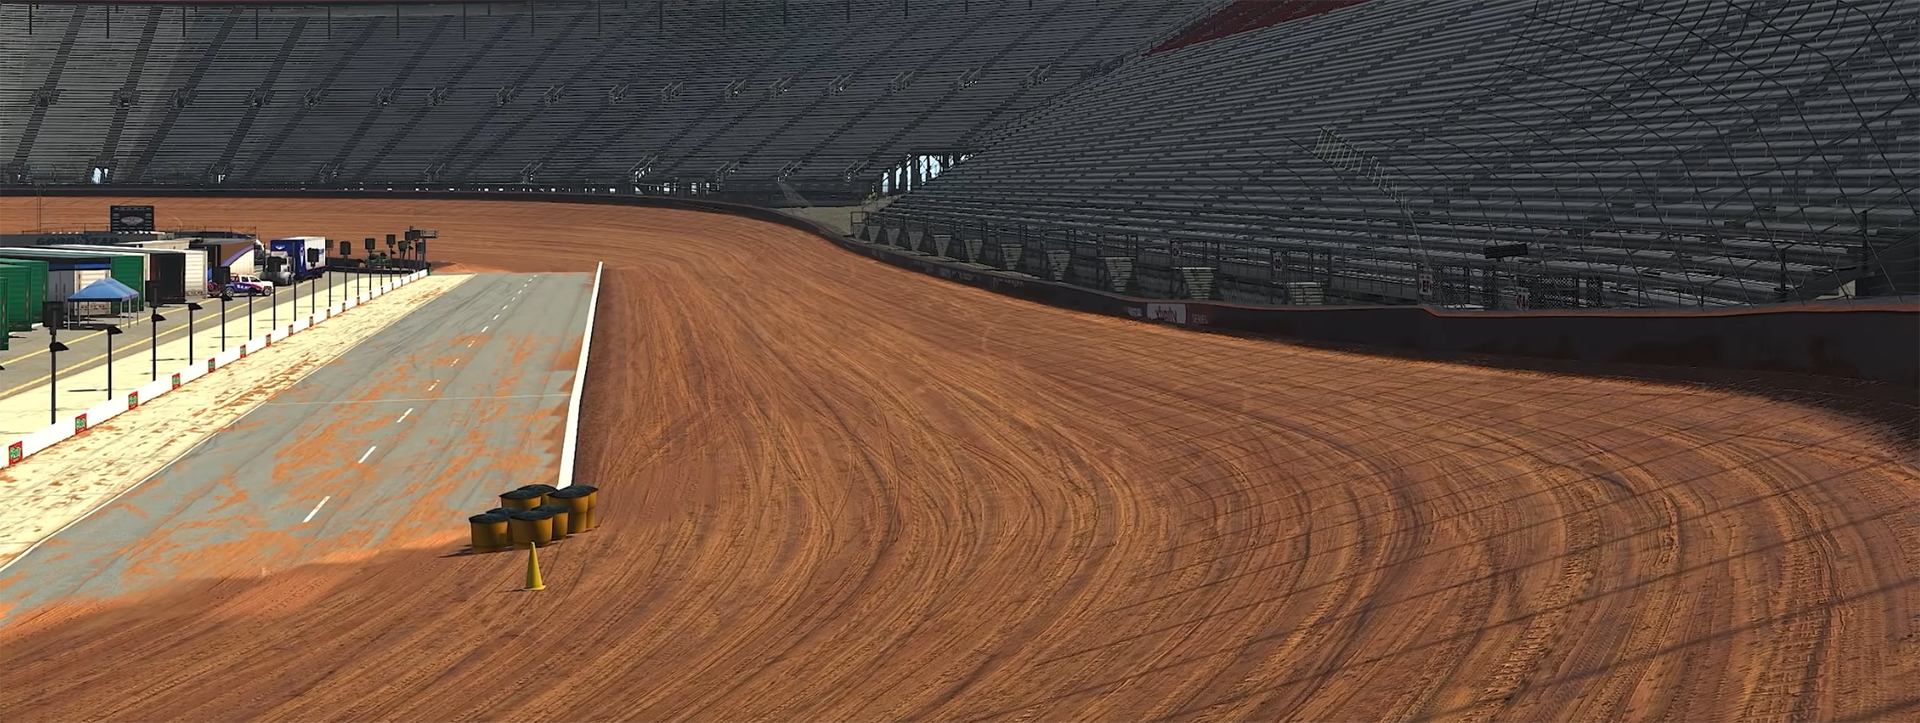 iRacing Preview Bristol Dirt, Releases March 9, 2021